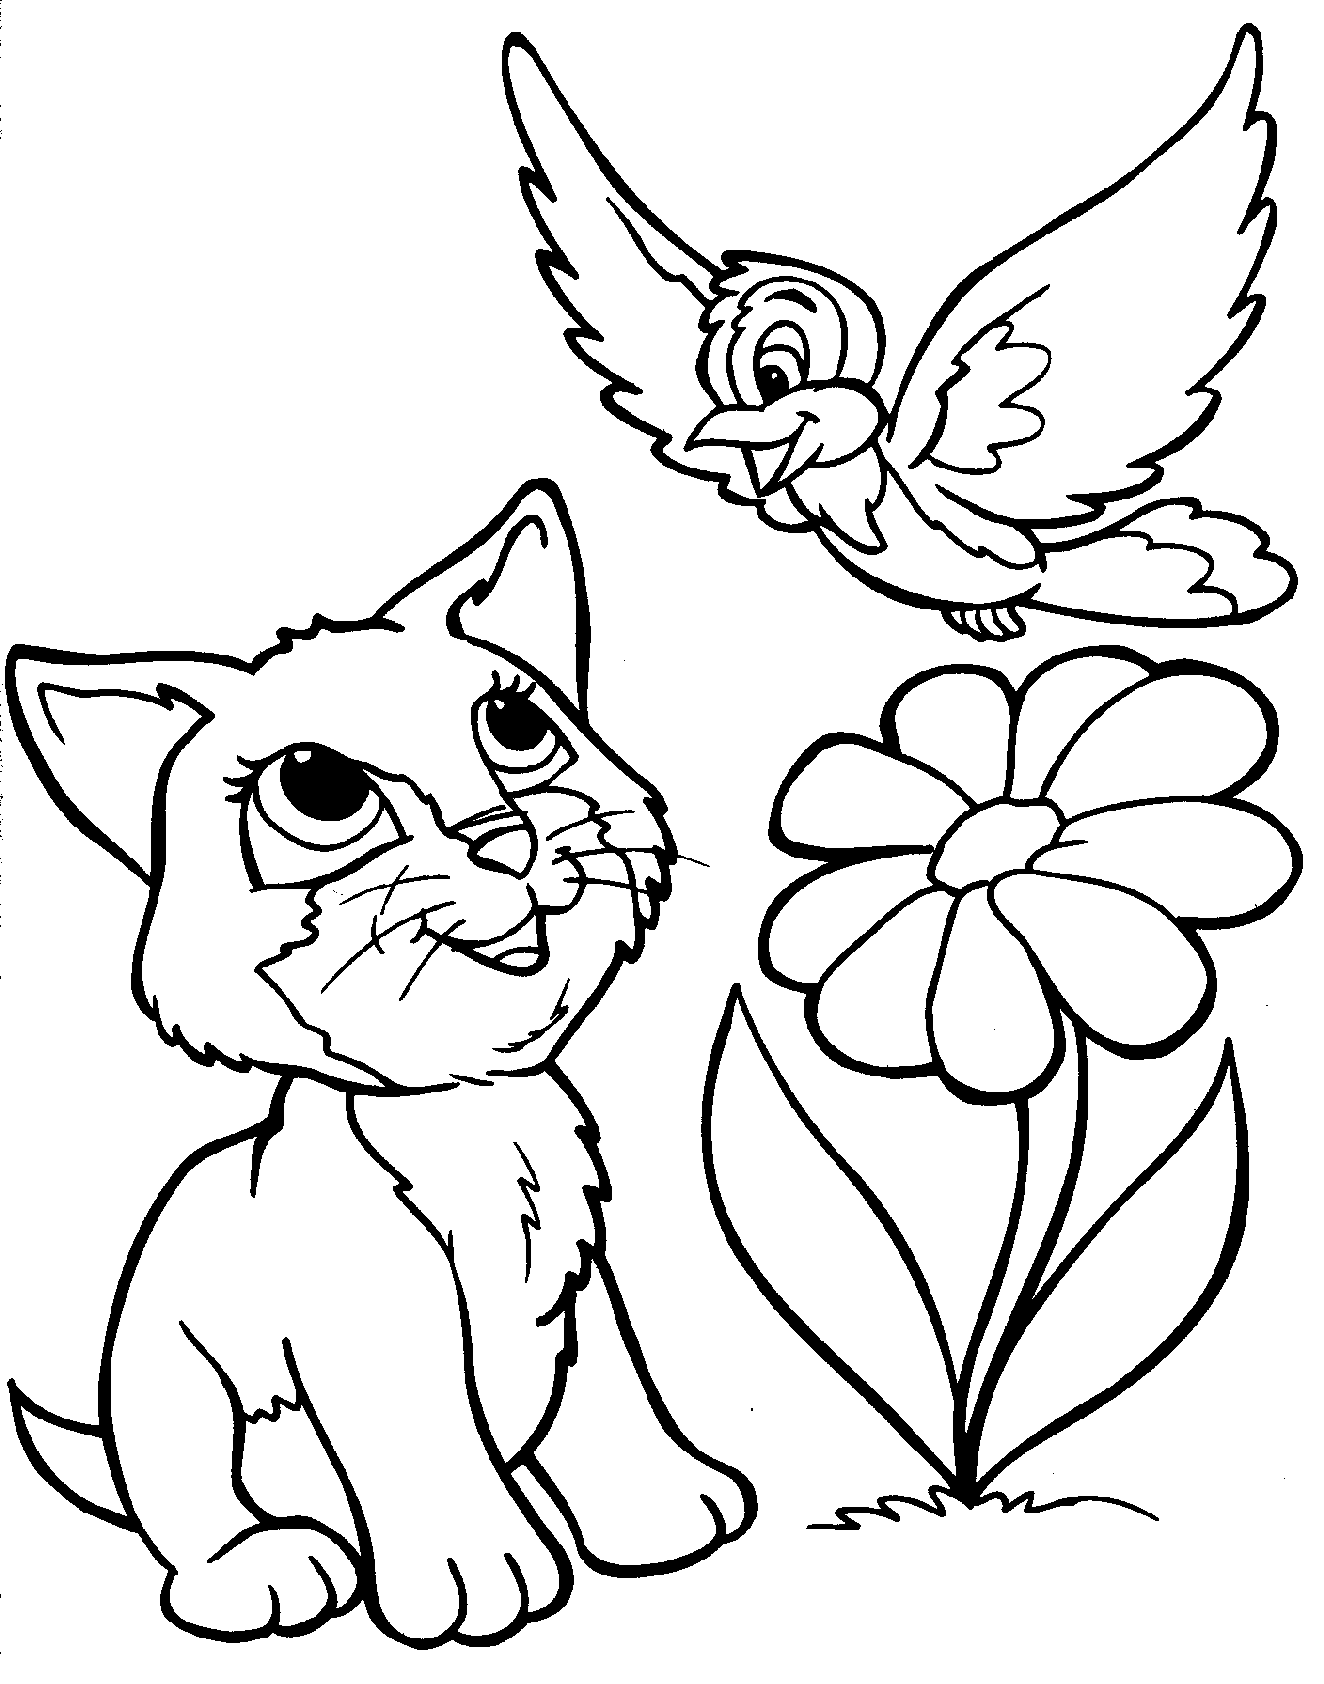 kitten bird flower coloring page printable | coloring printables ...